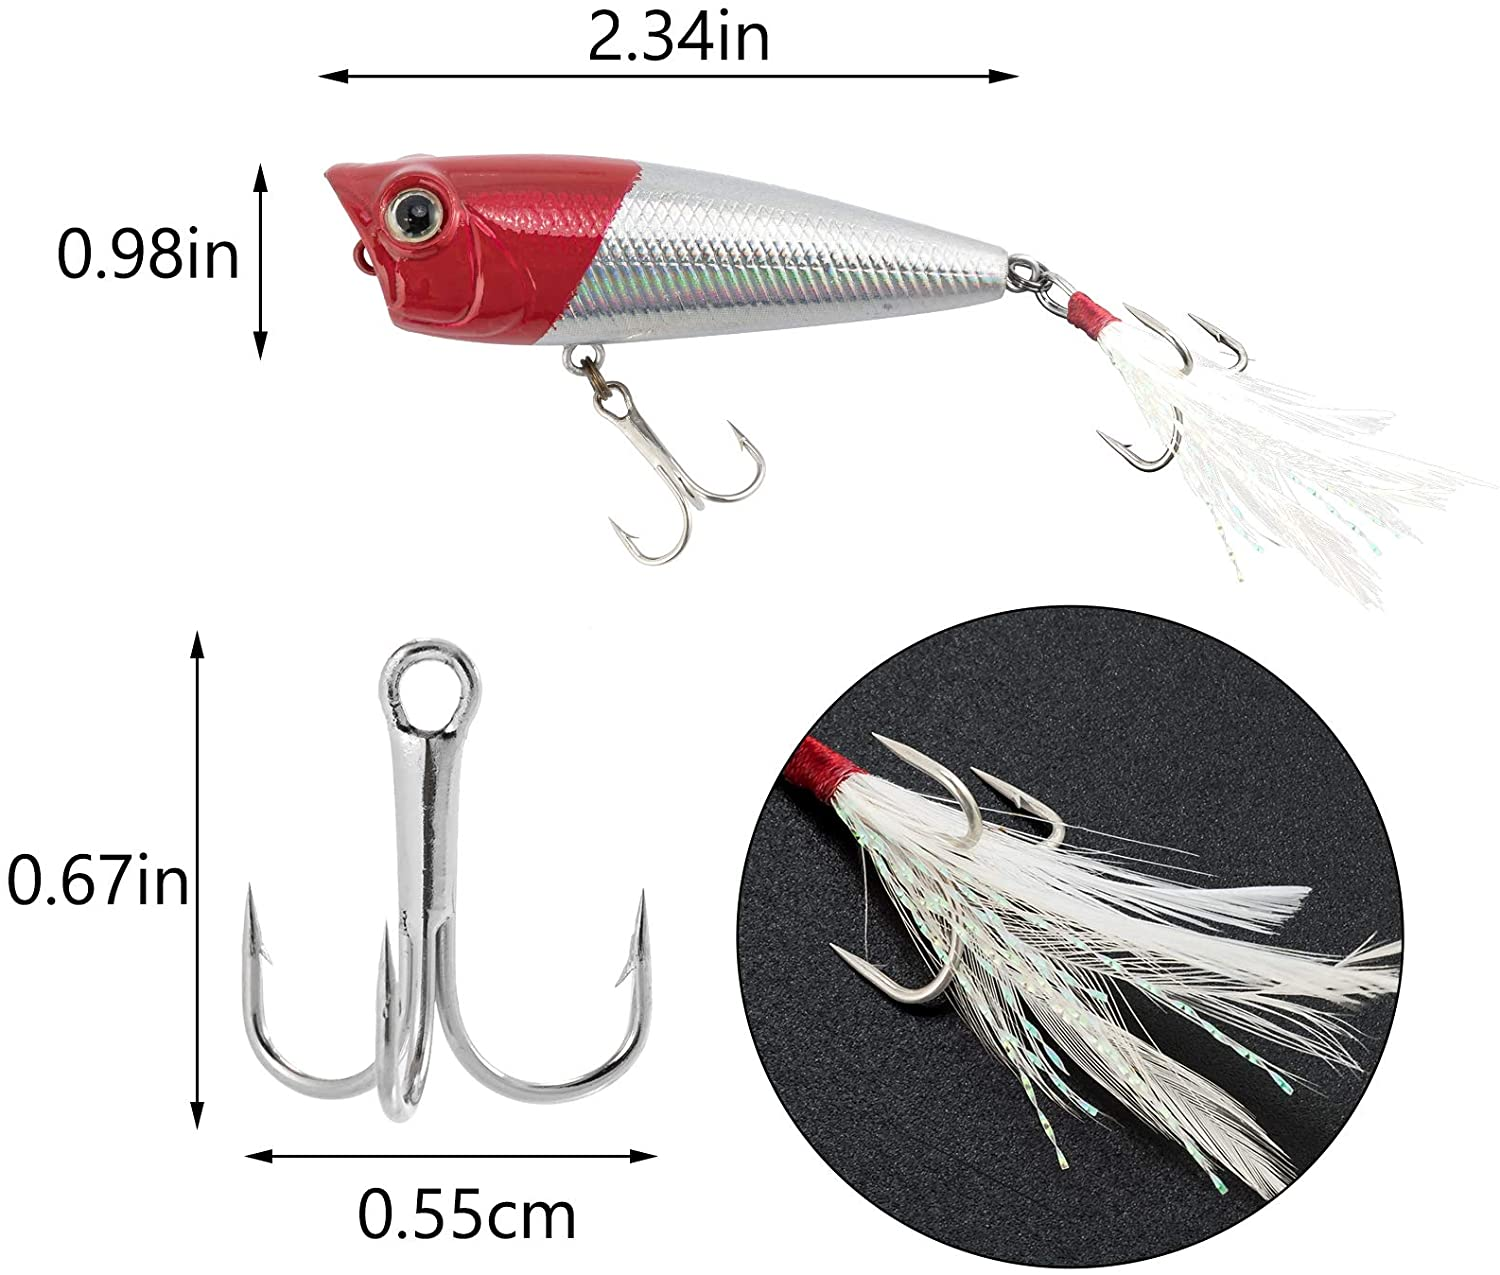 Topwater popper bait for bass in the summer